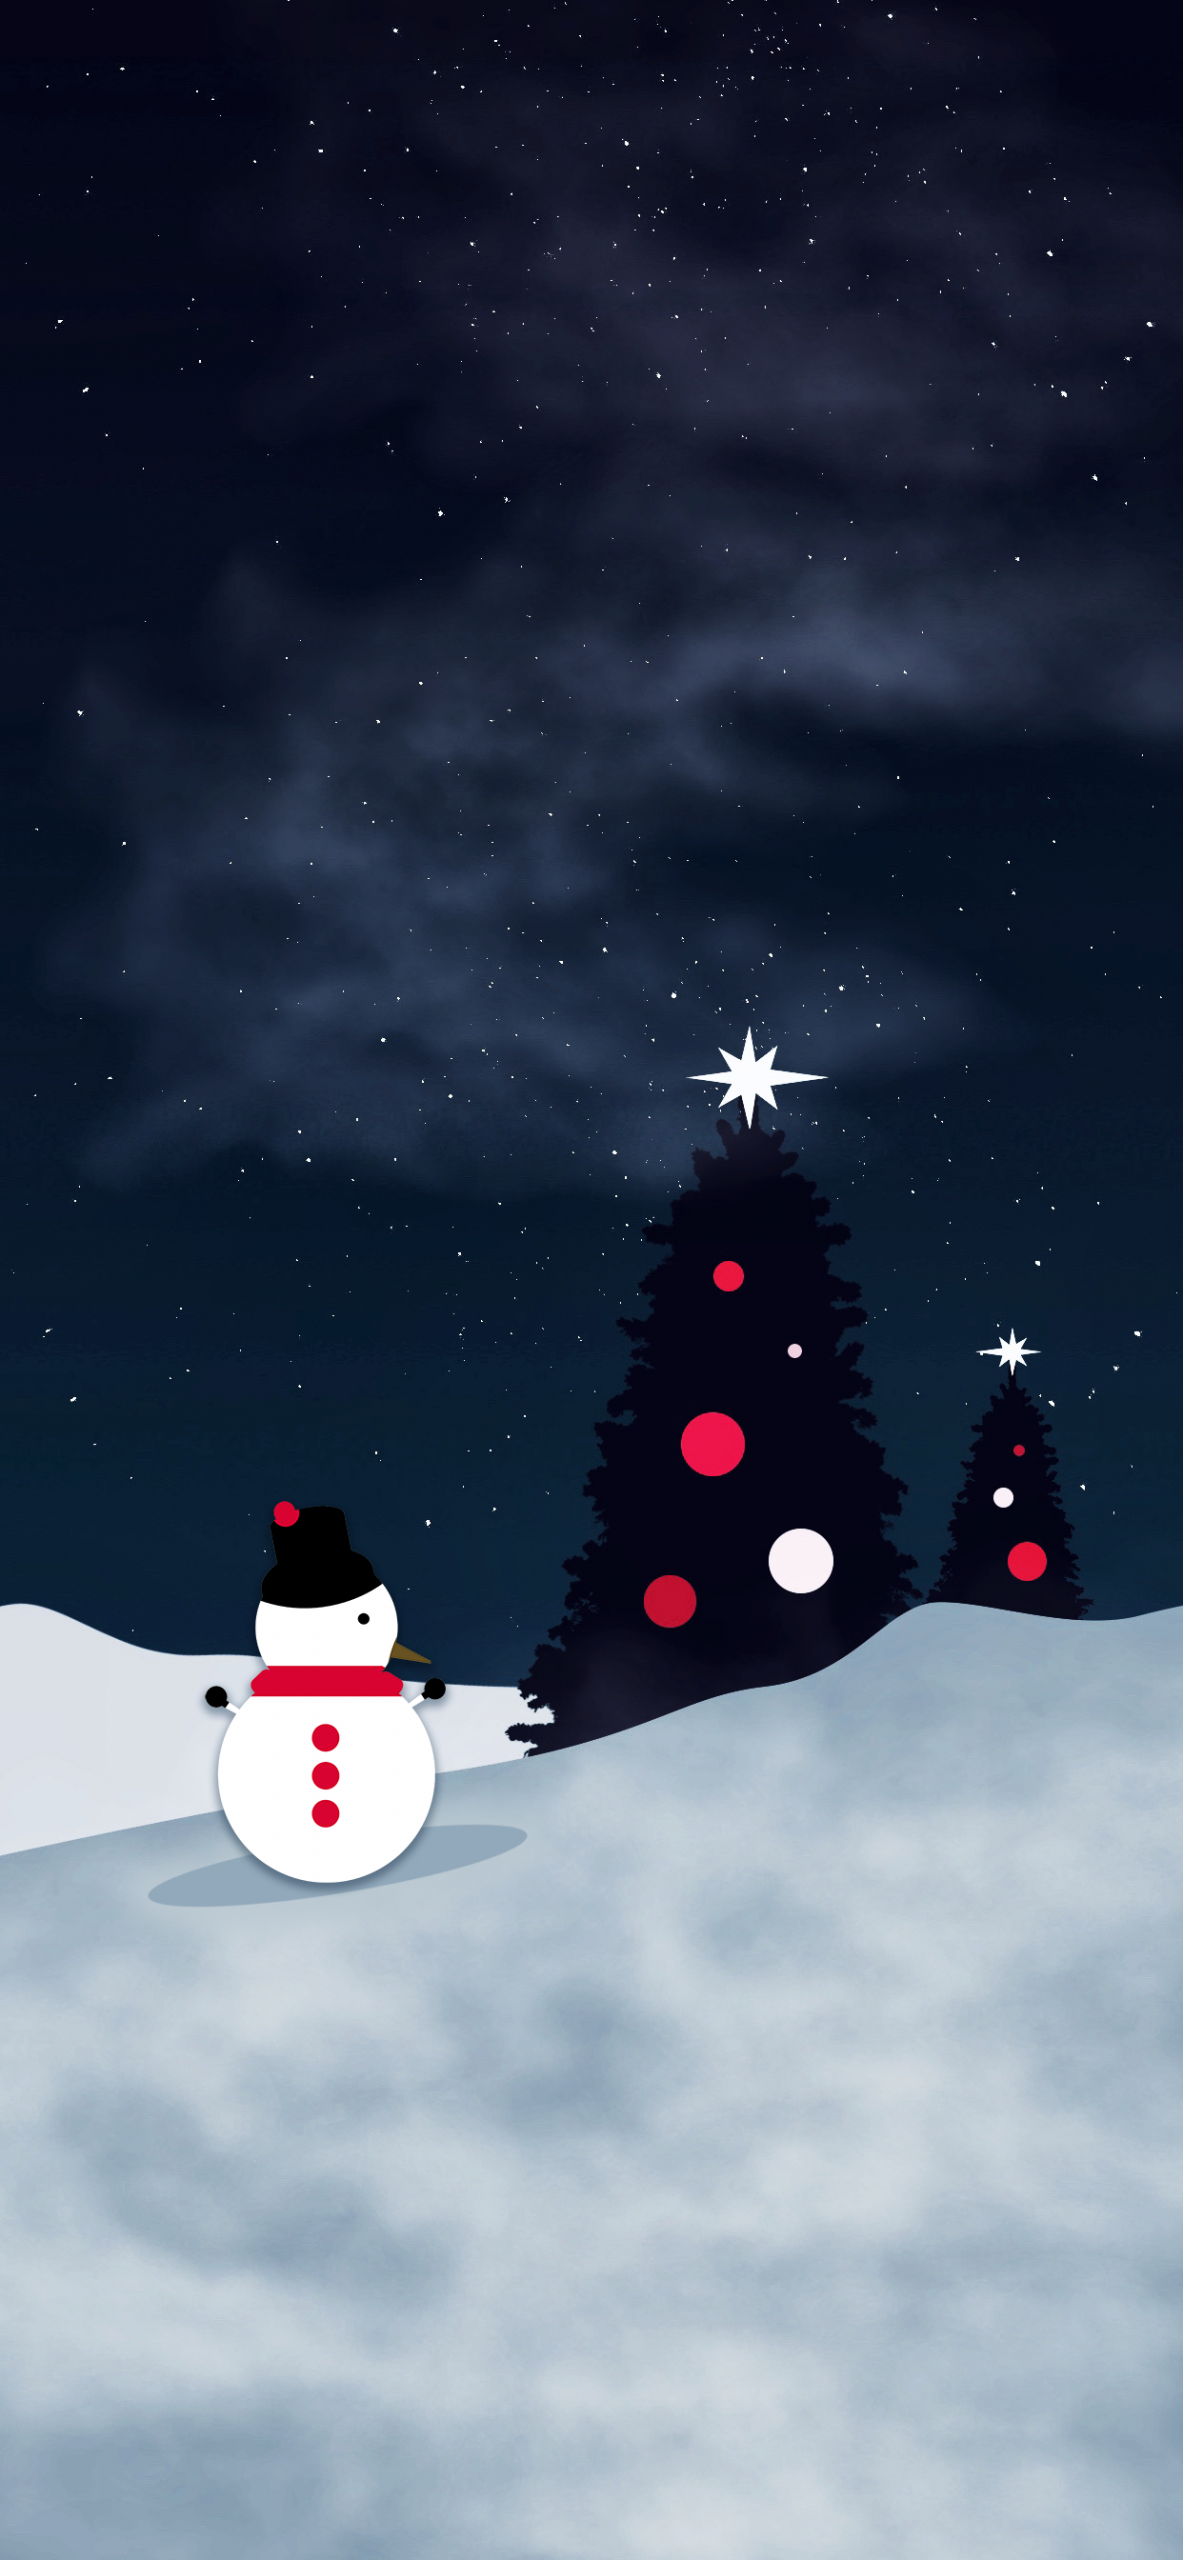 Merry Christmas wallpaper pack for iPhone 1183x2560